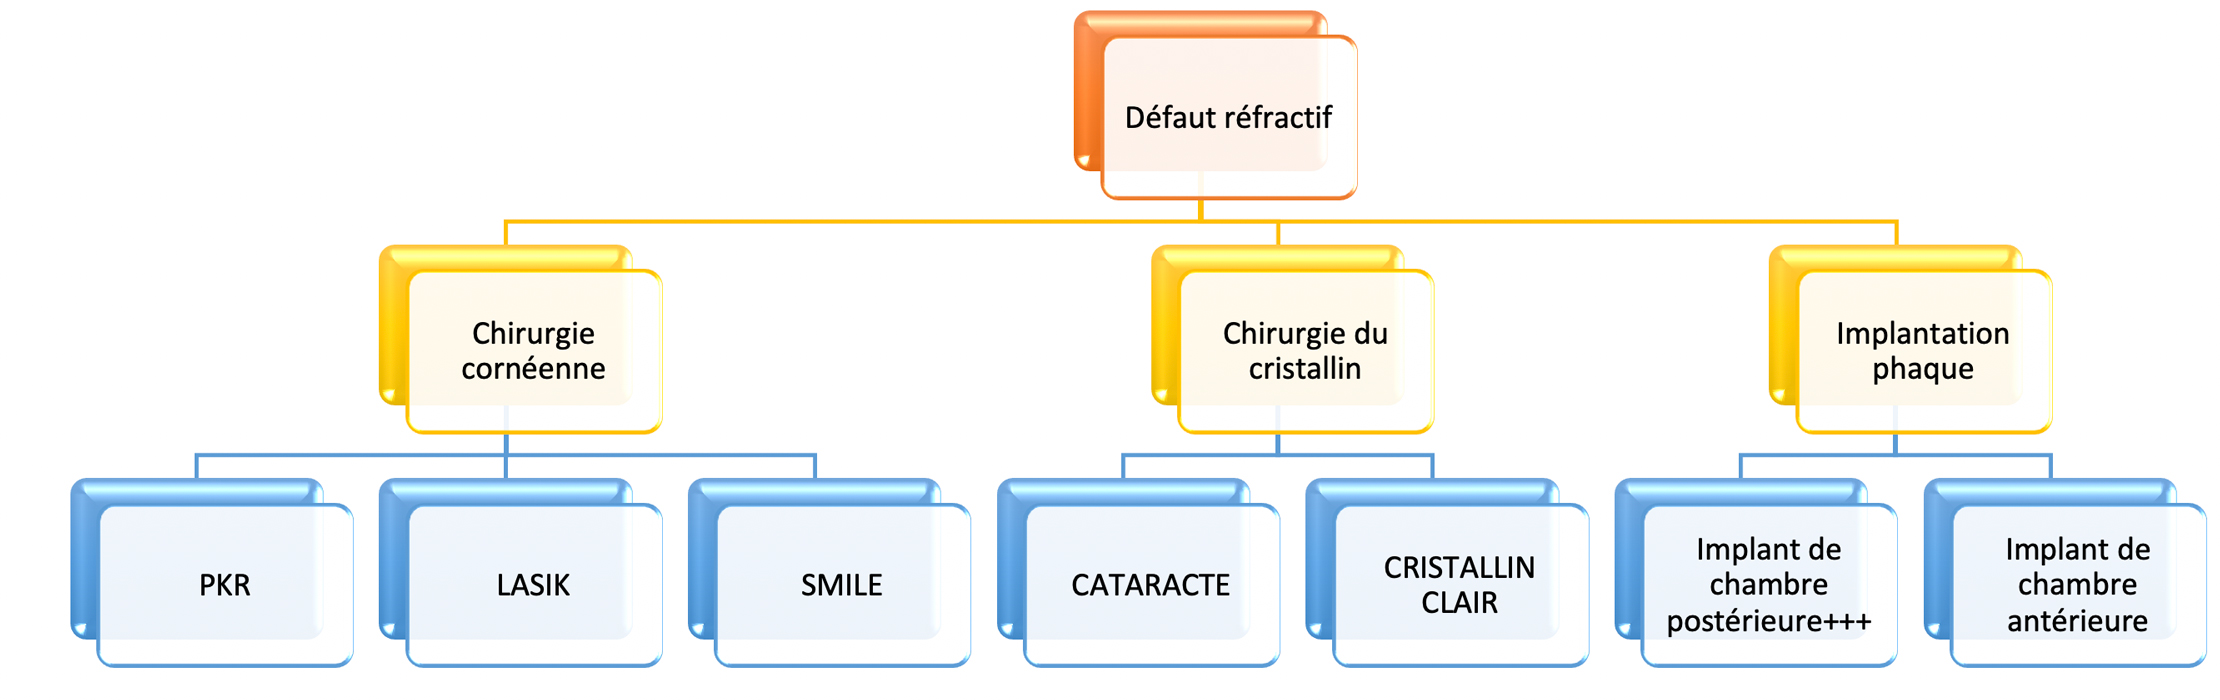 panorama des différentes chirurgies refractives disponibles